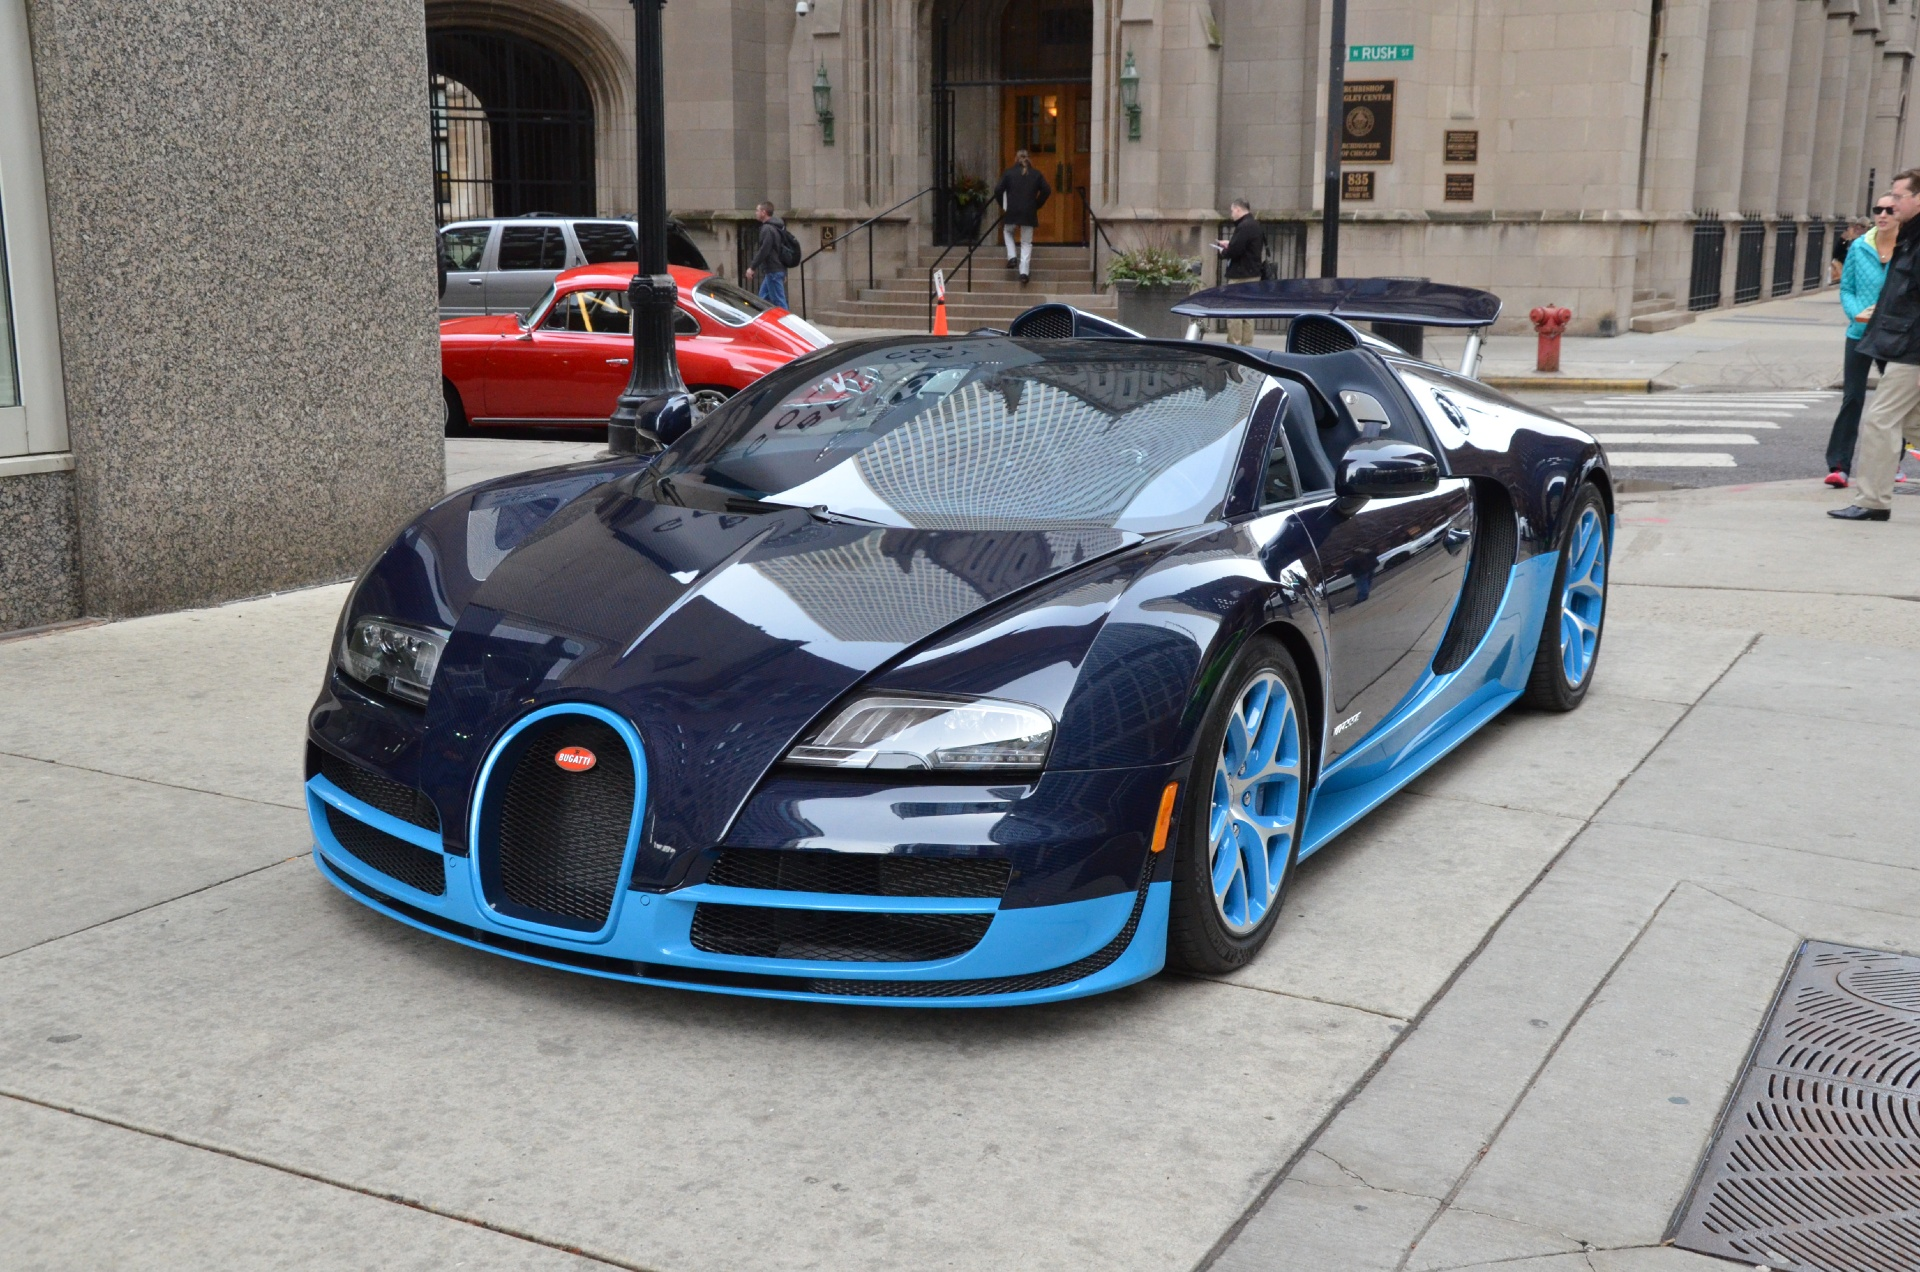 2014 bugatti veyron vitesse stock gc1549 for sale near chicago il il bugatti dealer. Black Bedroom Furniture Sets. Home Design Ideas